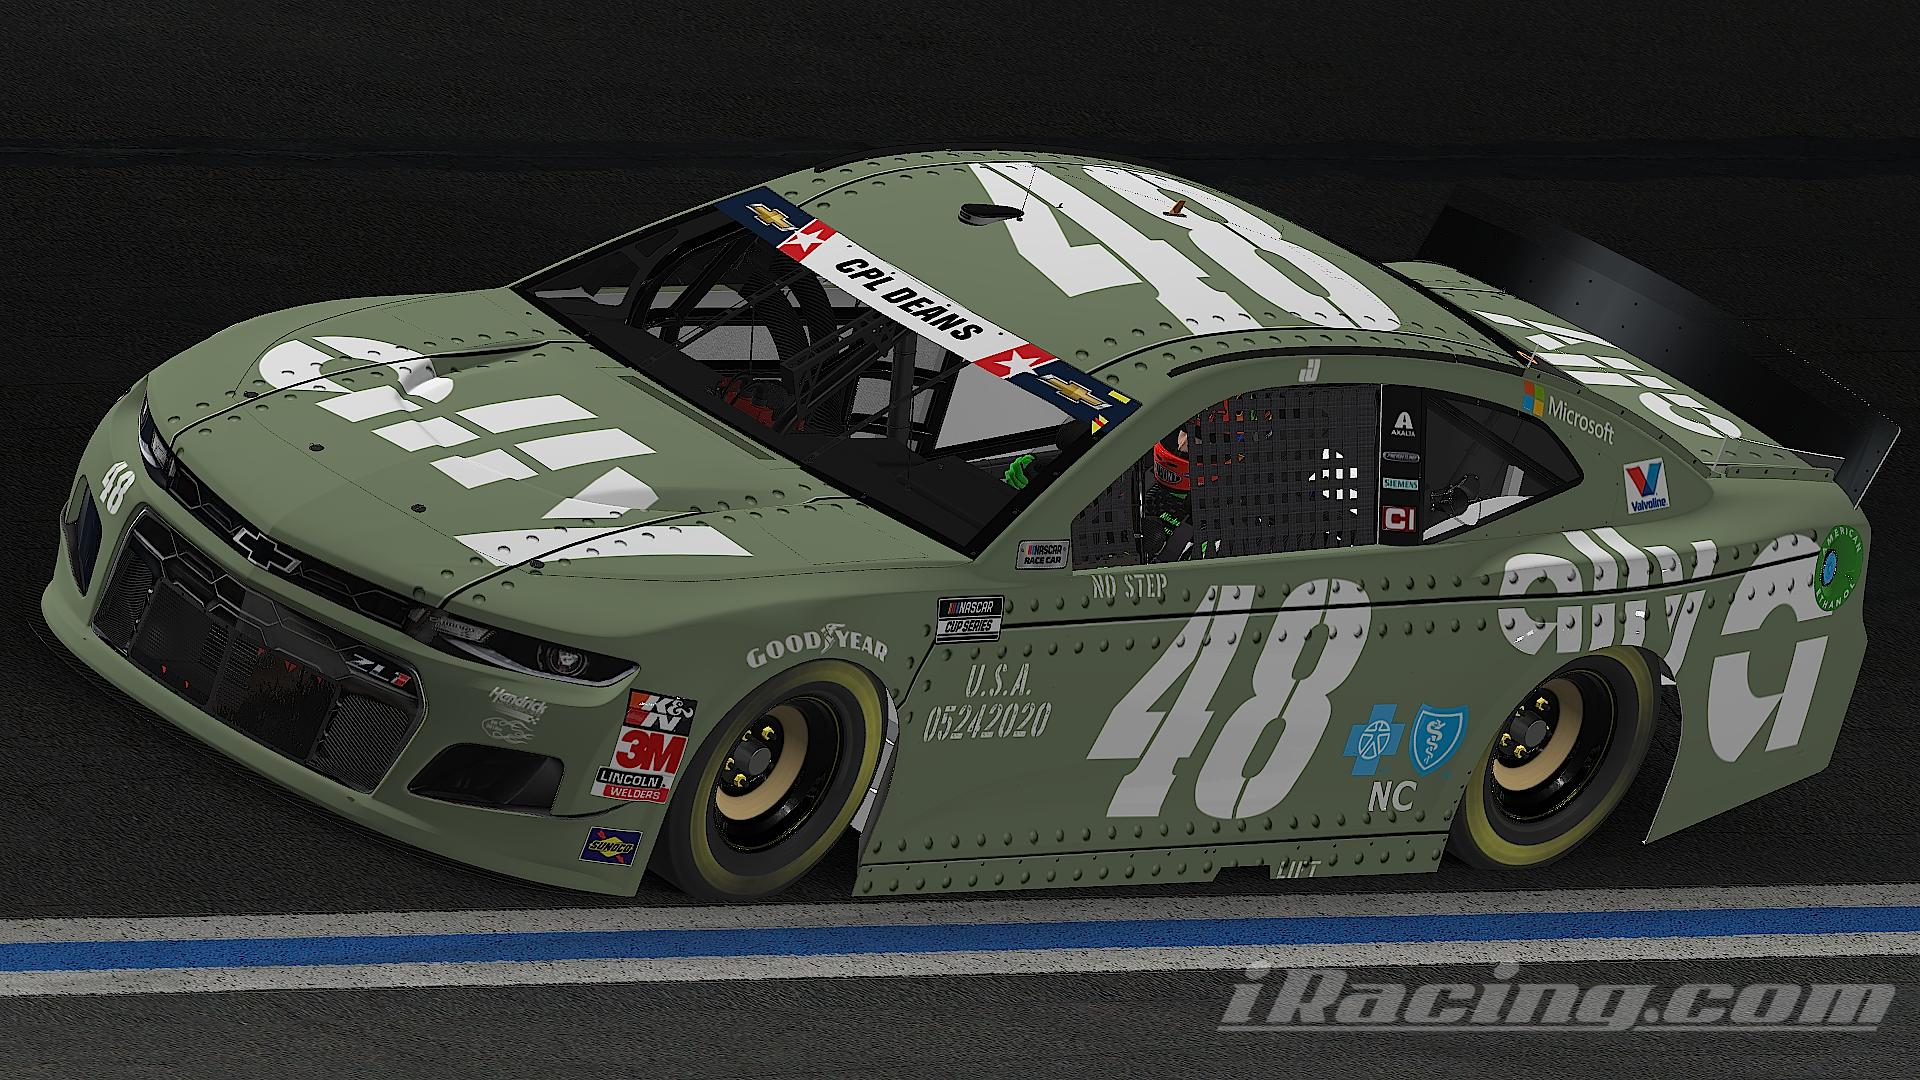 Preview of Jimmie Johnson 2020 ally Memorial Day (no #)  Chevrolet Camaro ZL1 1LE Gen 6 by Nicholas Doucette